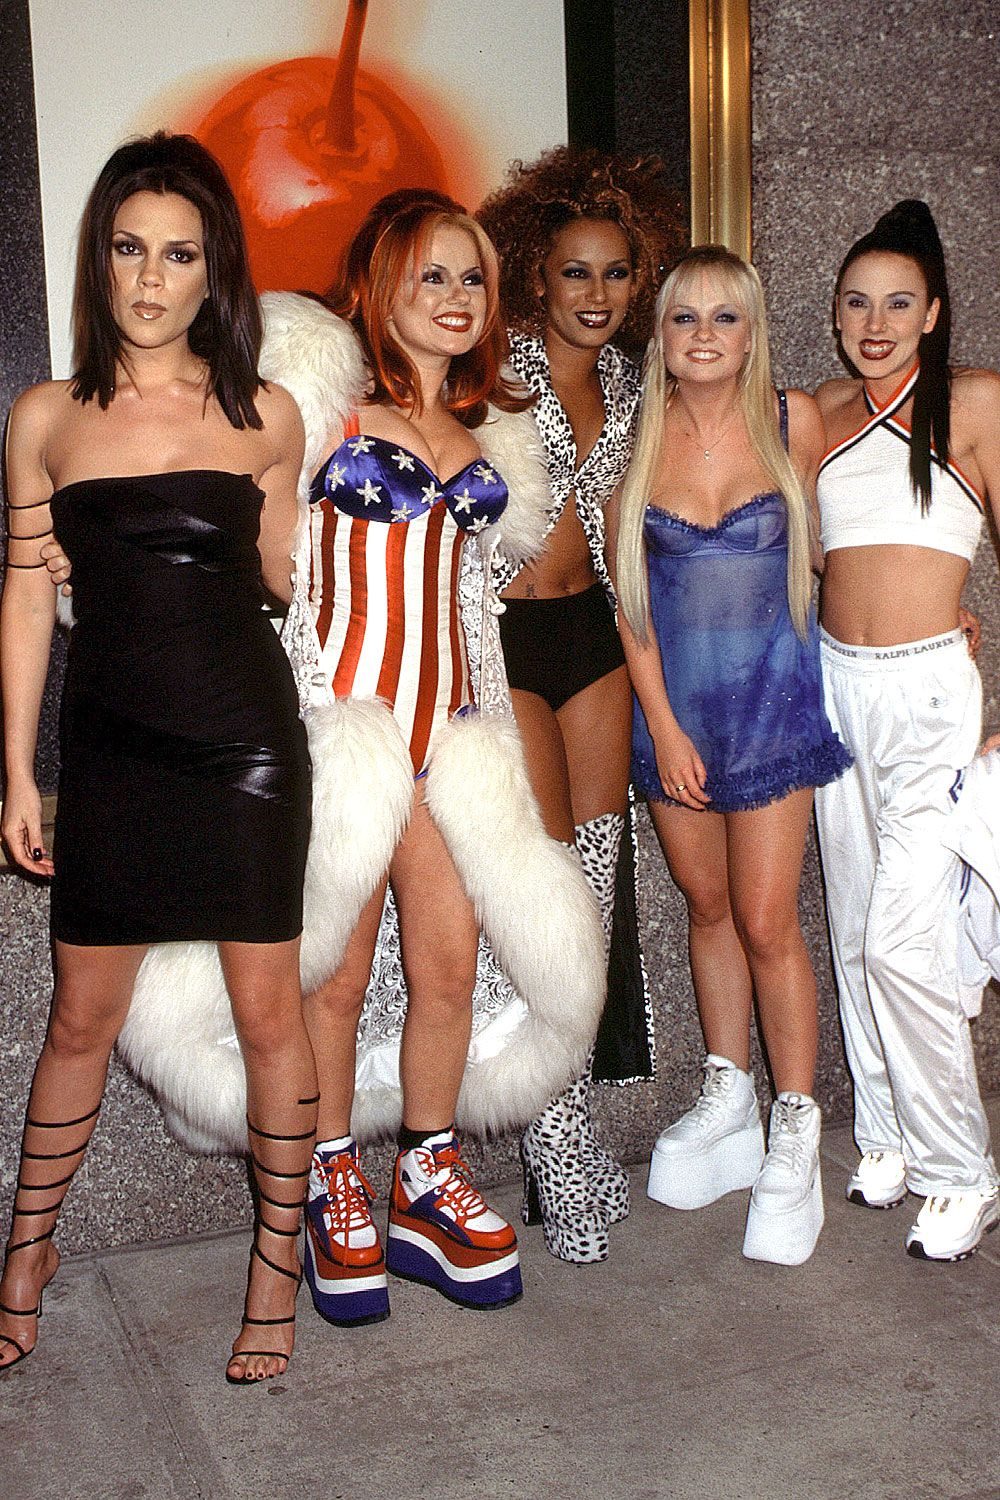 41 Incredible Photos of the Spice Girlsu0027 Style - Spice Girls Best Fashion  sc 1 st  Cosmopolitan & 41 Incredible Photos of the Spice Girlsu0027 Style - Spice Girls Best ...